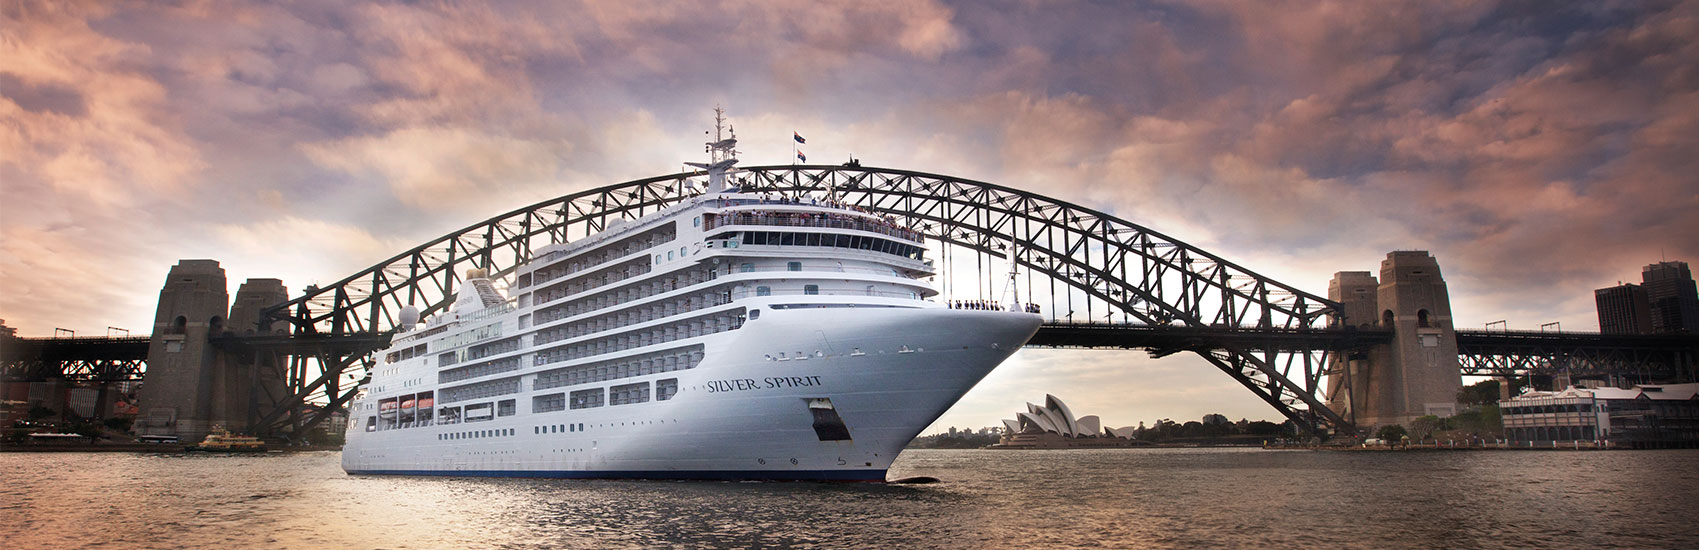 All-Inclusive Offer to Australia & New Zealand with Silversea Cruises